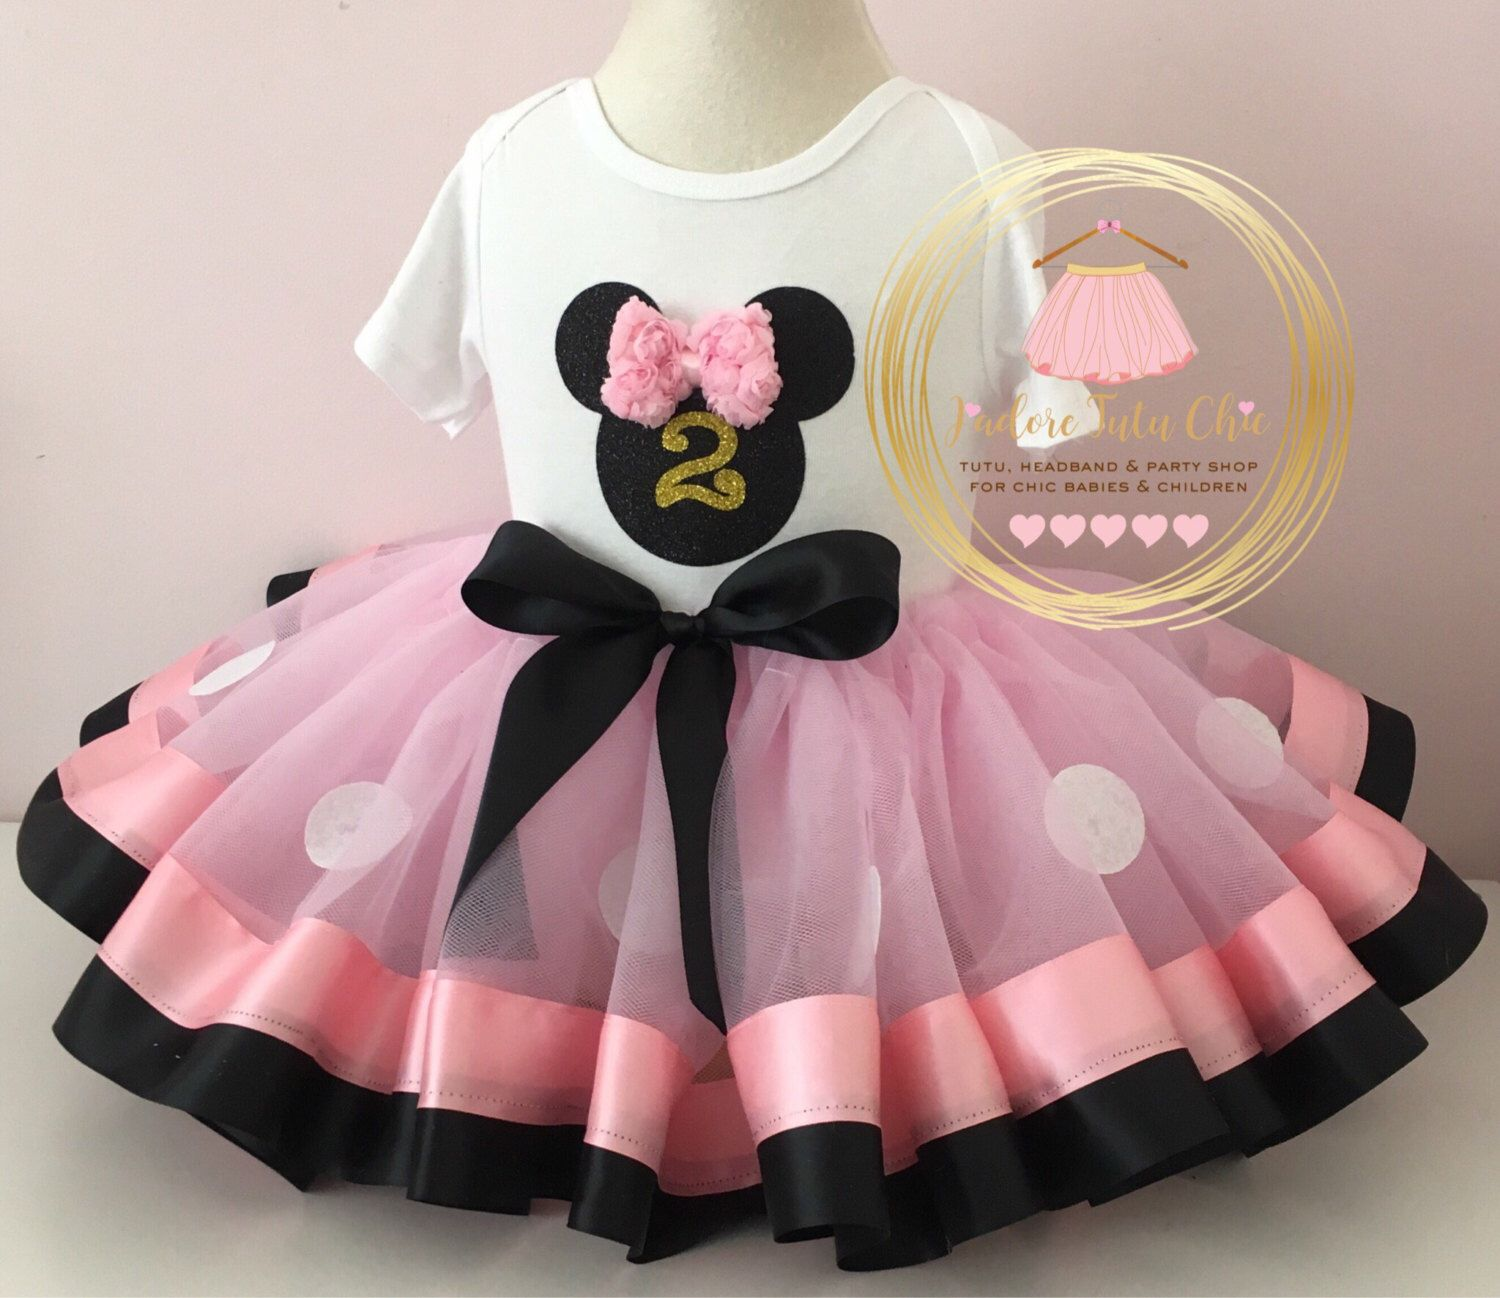 Minnie mouse birthday outfit - 1st birthday minnie mouse outfit ...